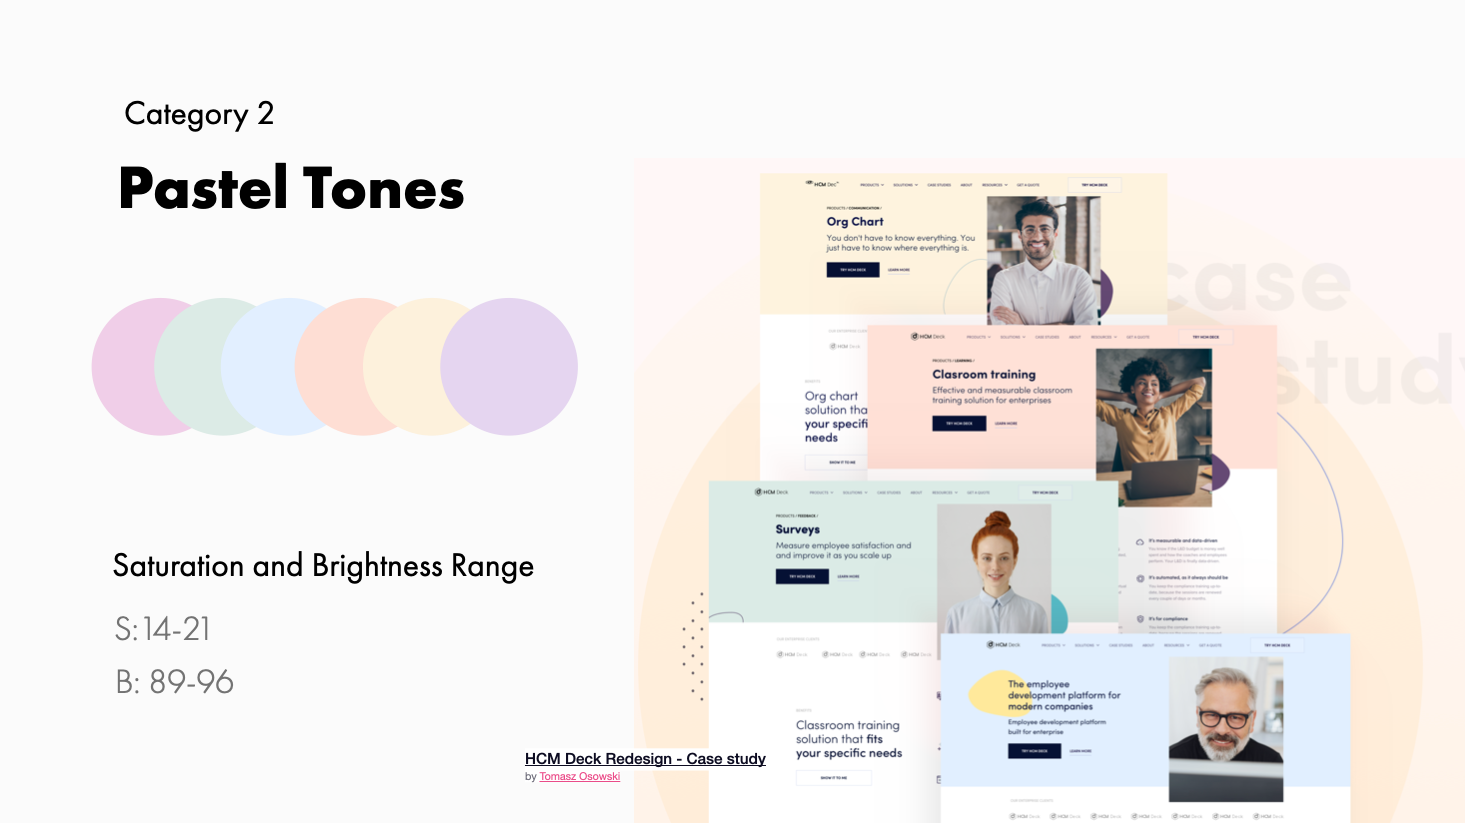 Pastel tone example and range | HCM Deck Redesign Case study by Tomasz Osowski